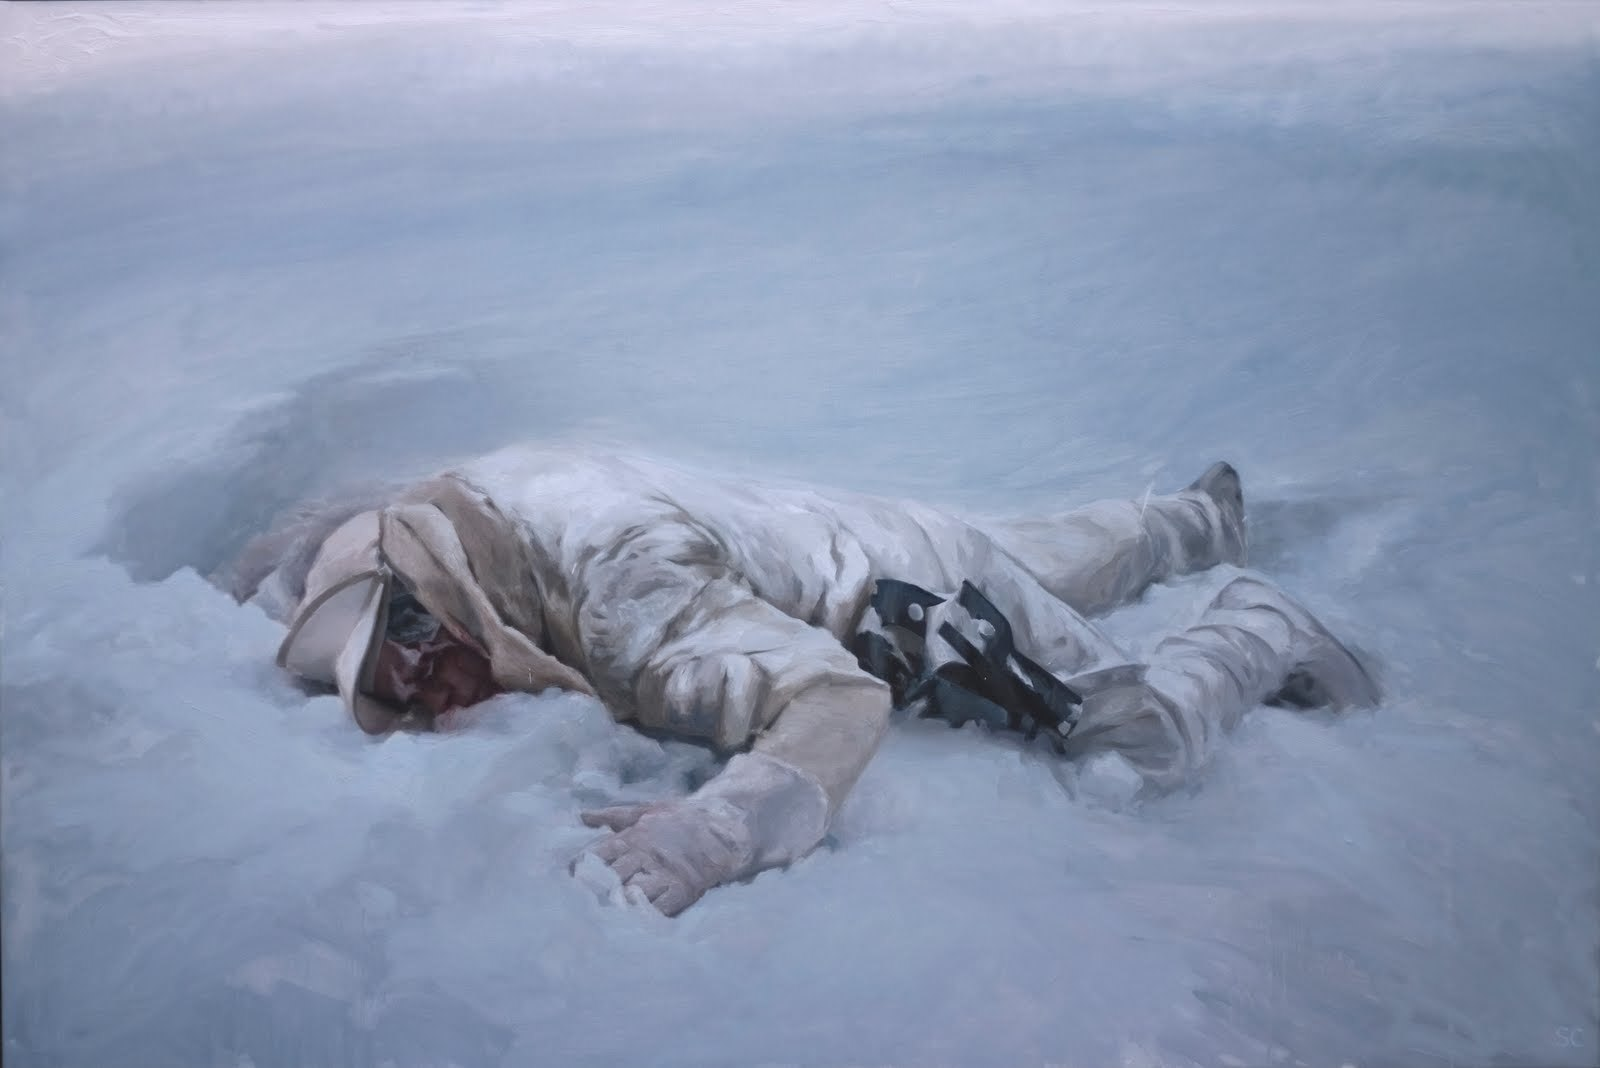 Hoth artwork Star Wars: HD Wallpaper